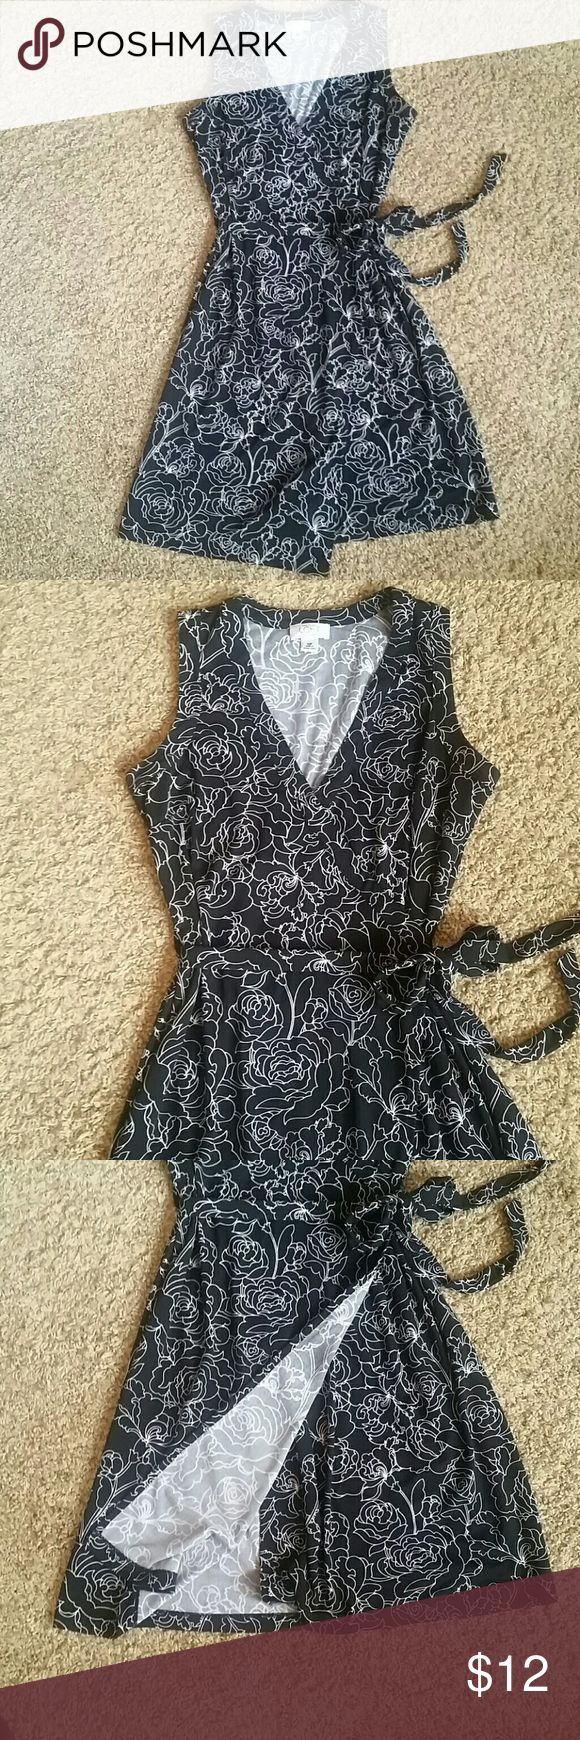 Fun and Flirty Wrap Dress from LOFT Black dress with White Floral Pattern. Like new condition LOFT Dresses